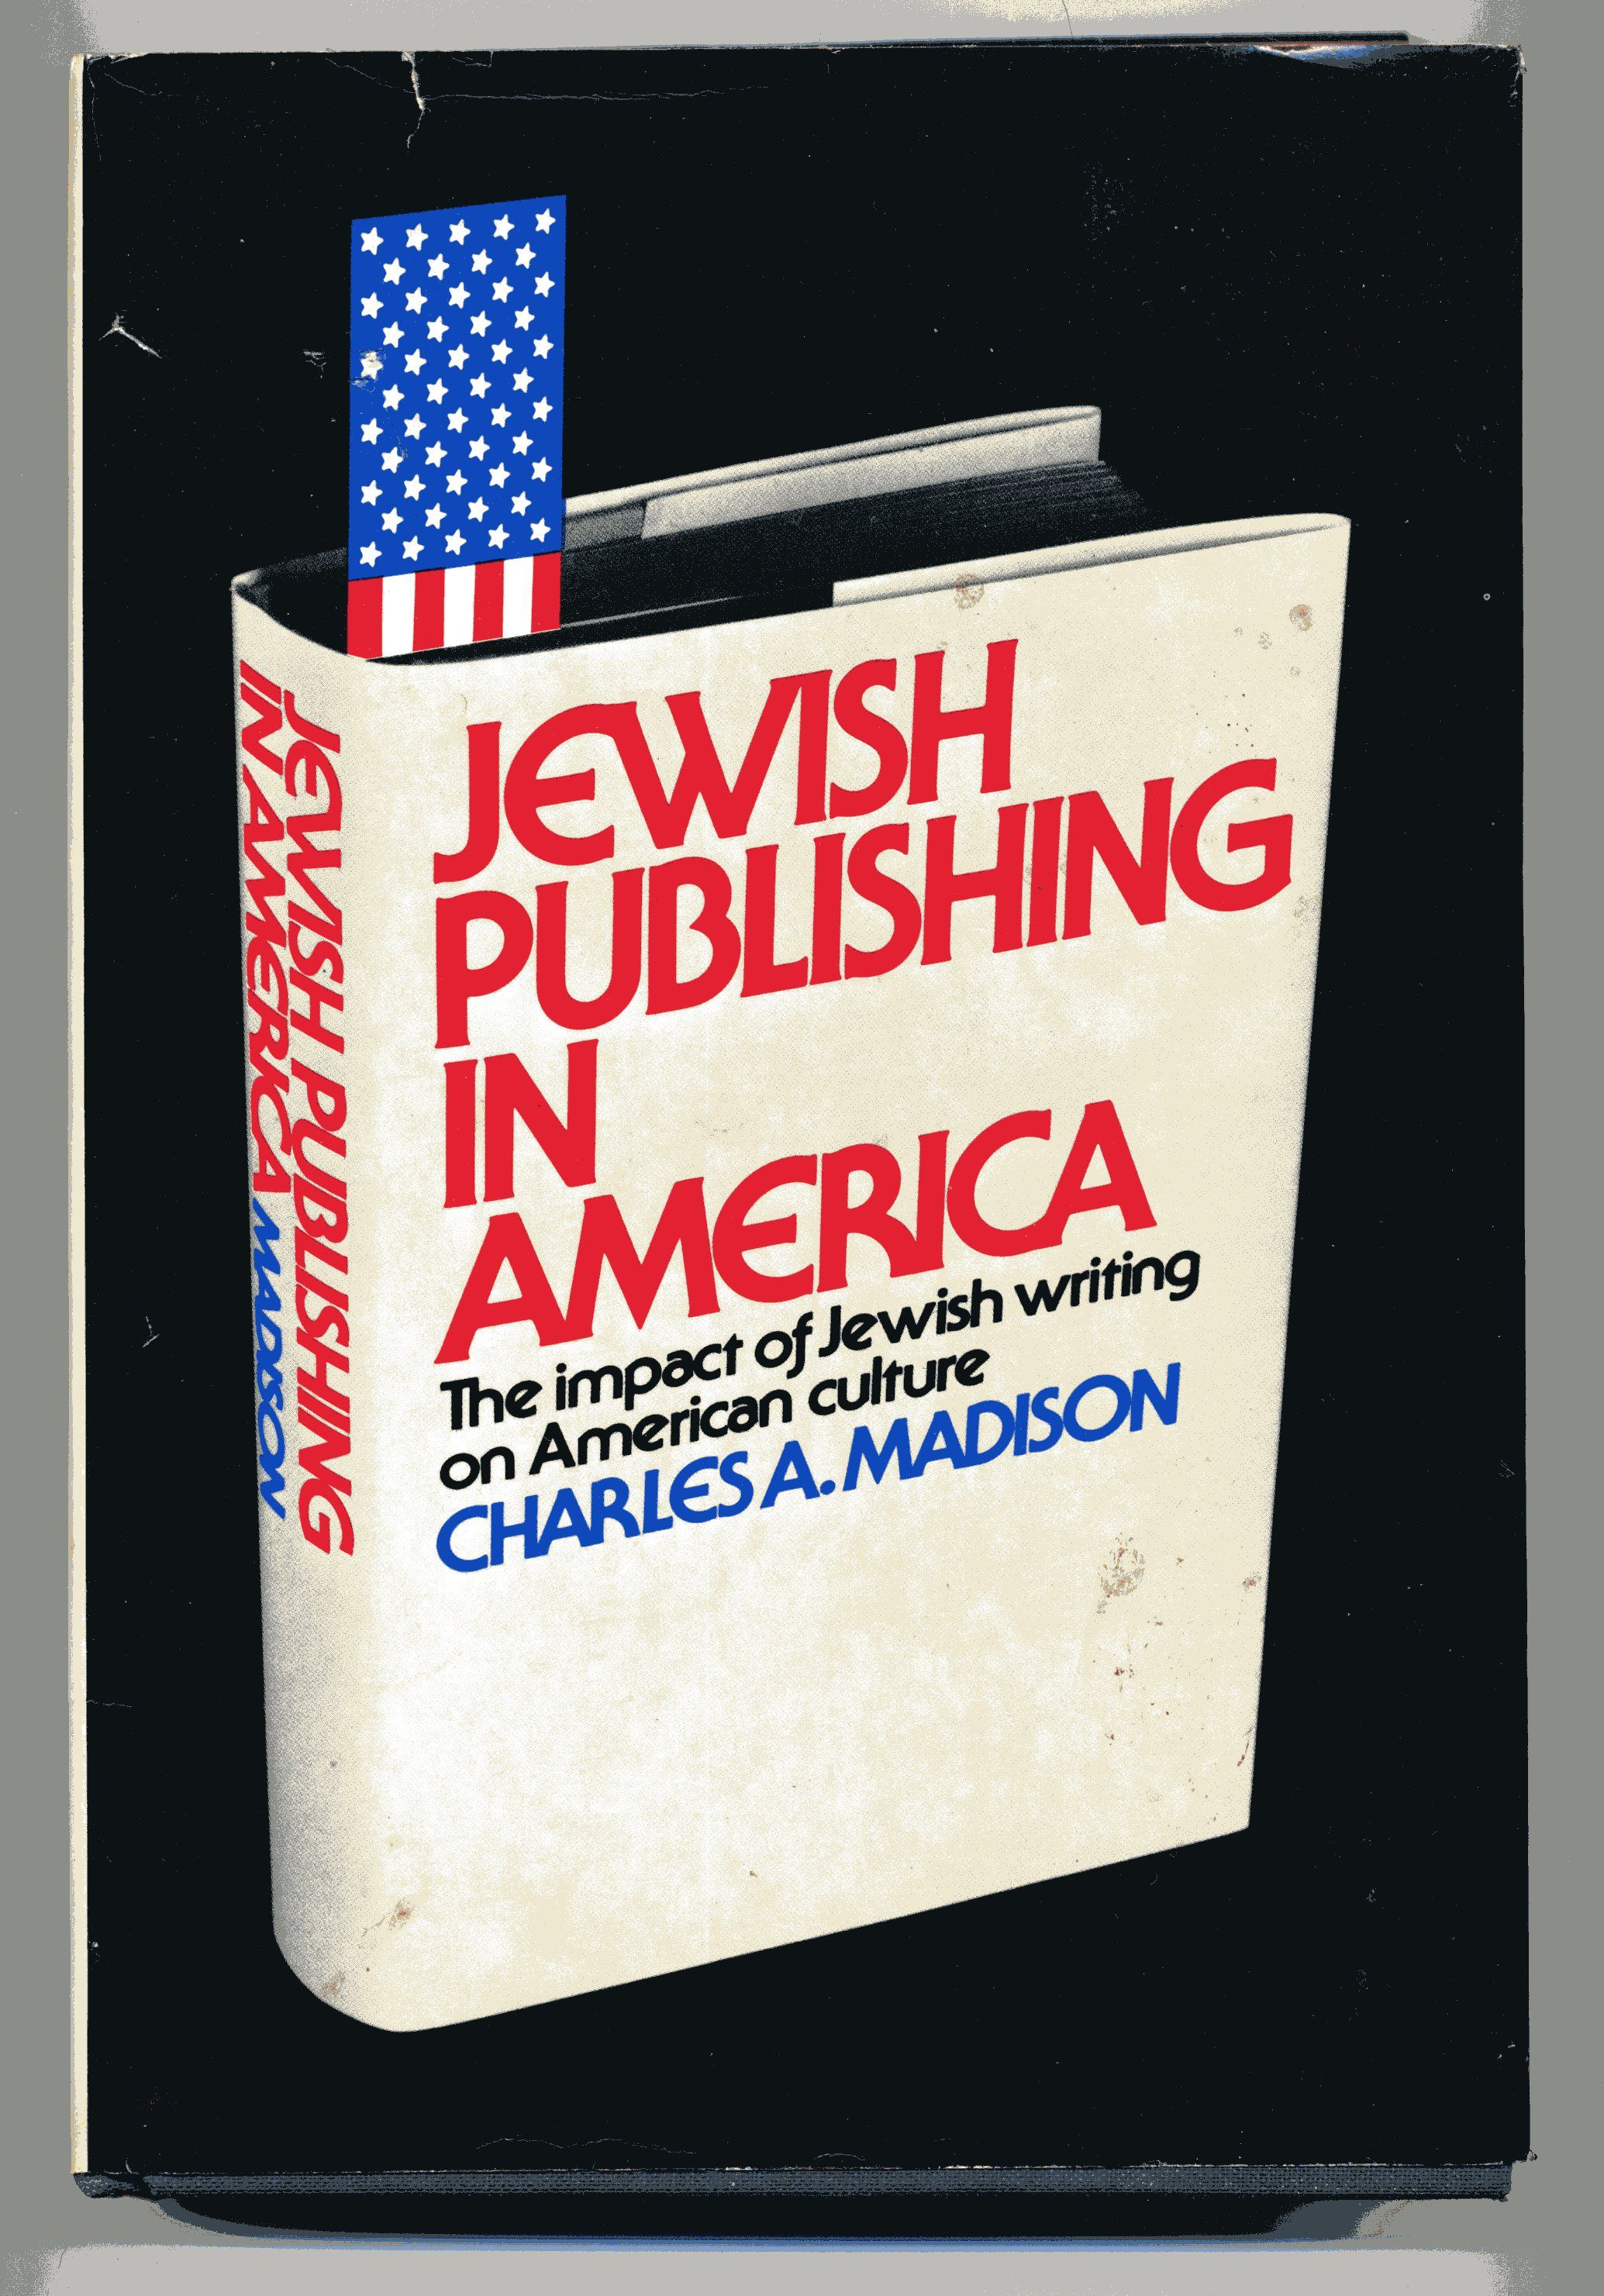 the effects of zionism on american jewish novels essay Zionism and its impact- effect of zionist settlement on arab palestinian economy and society - a critique  zionism and its impact impact of jewish settlement on .